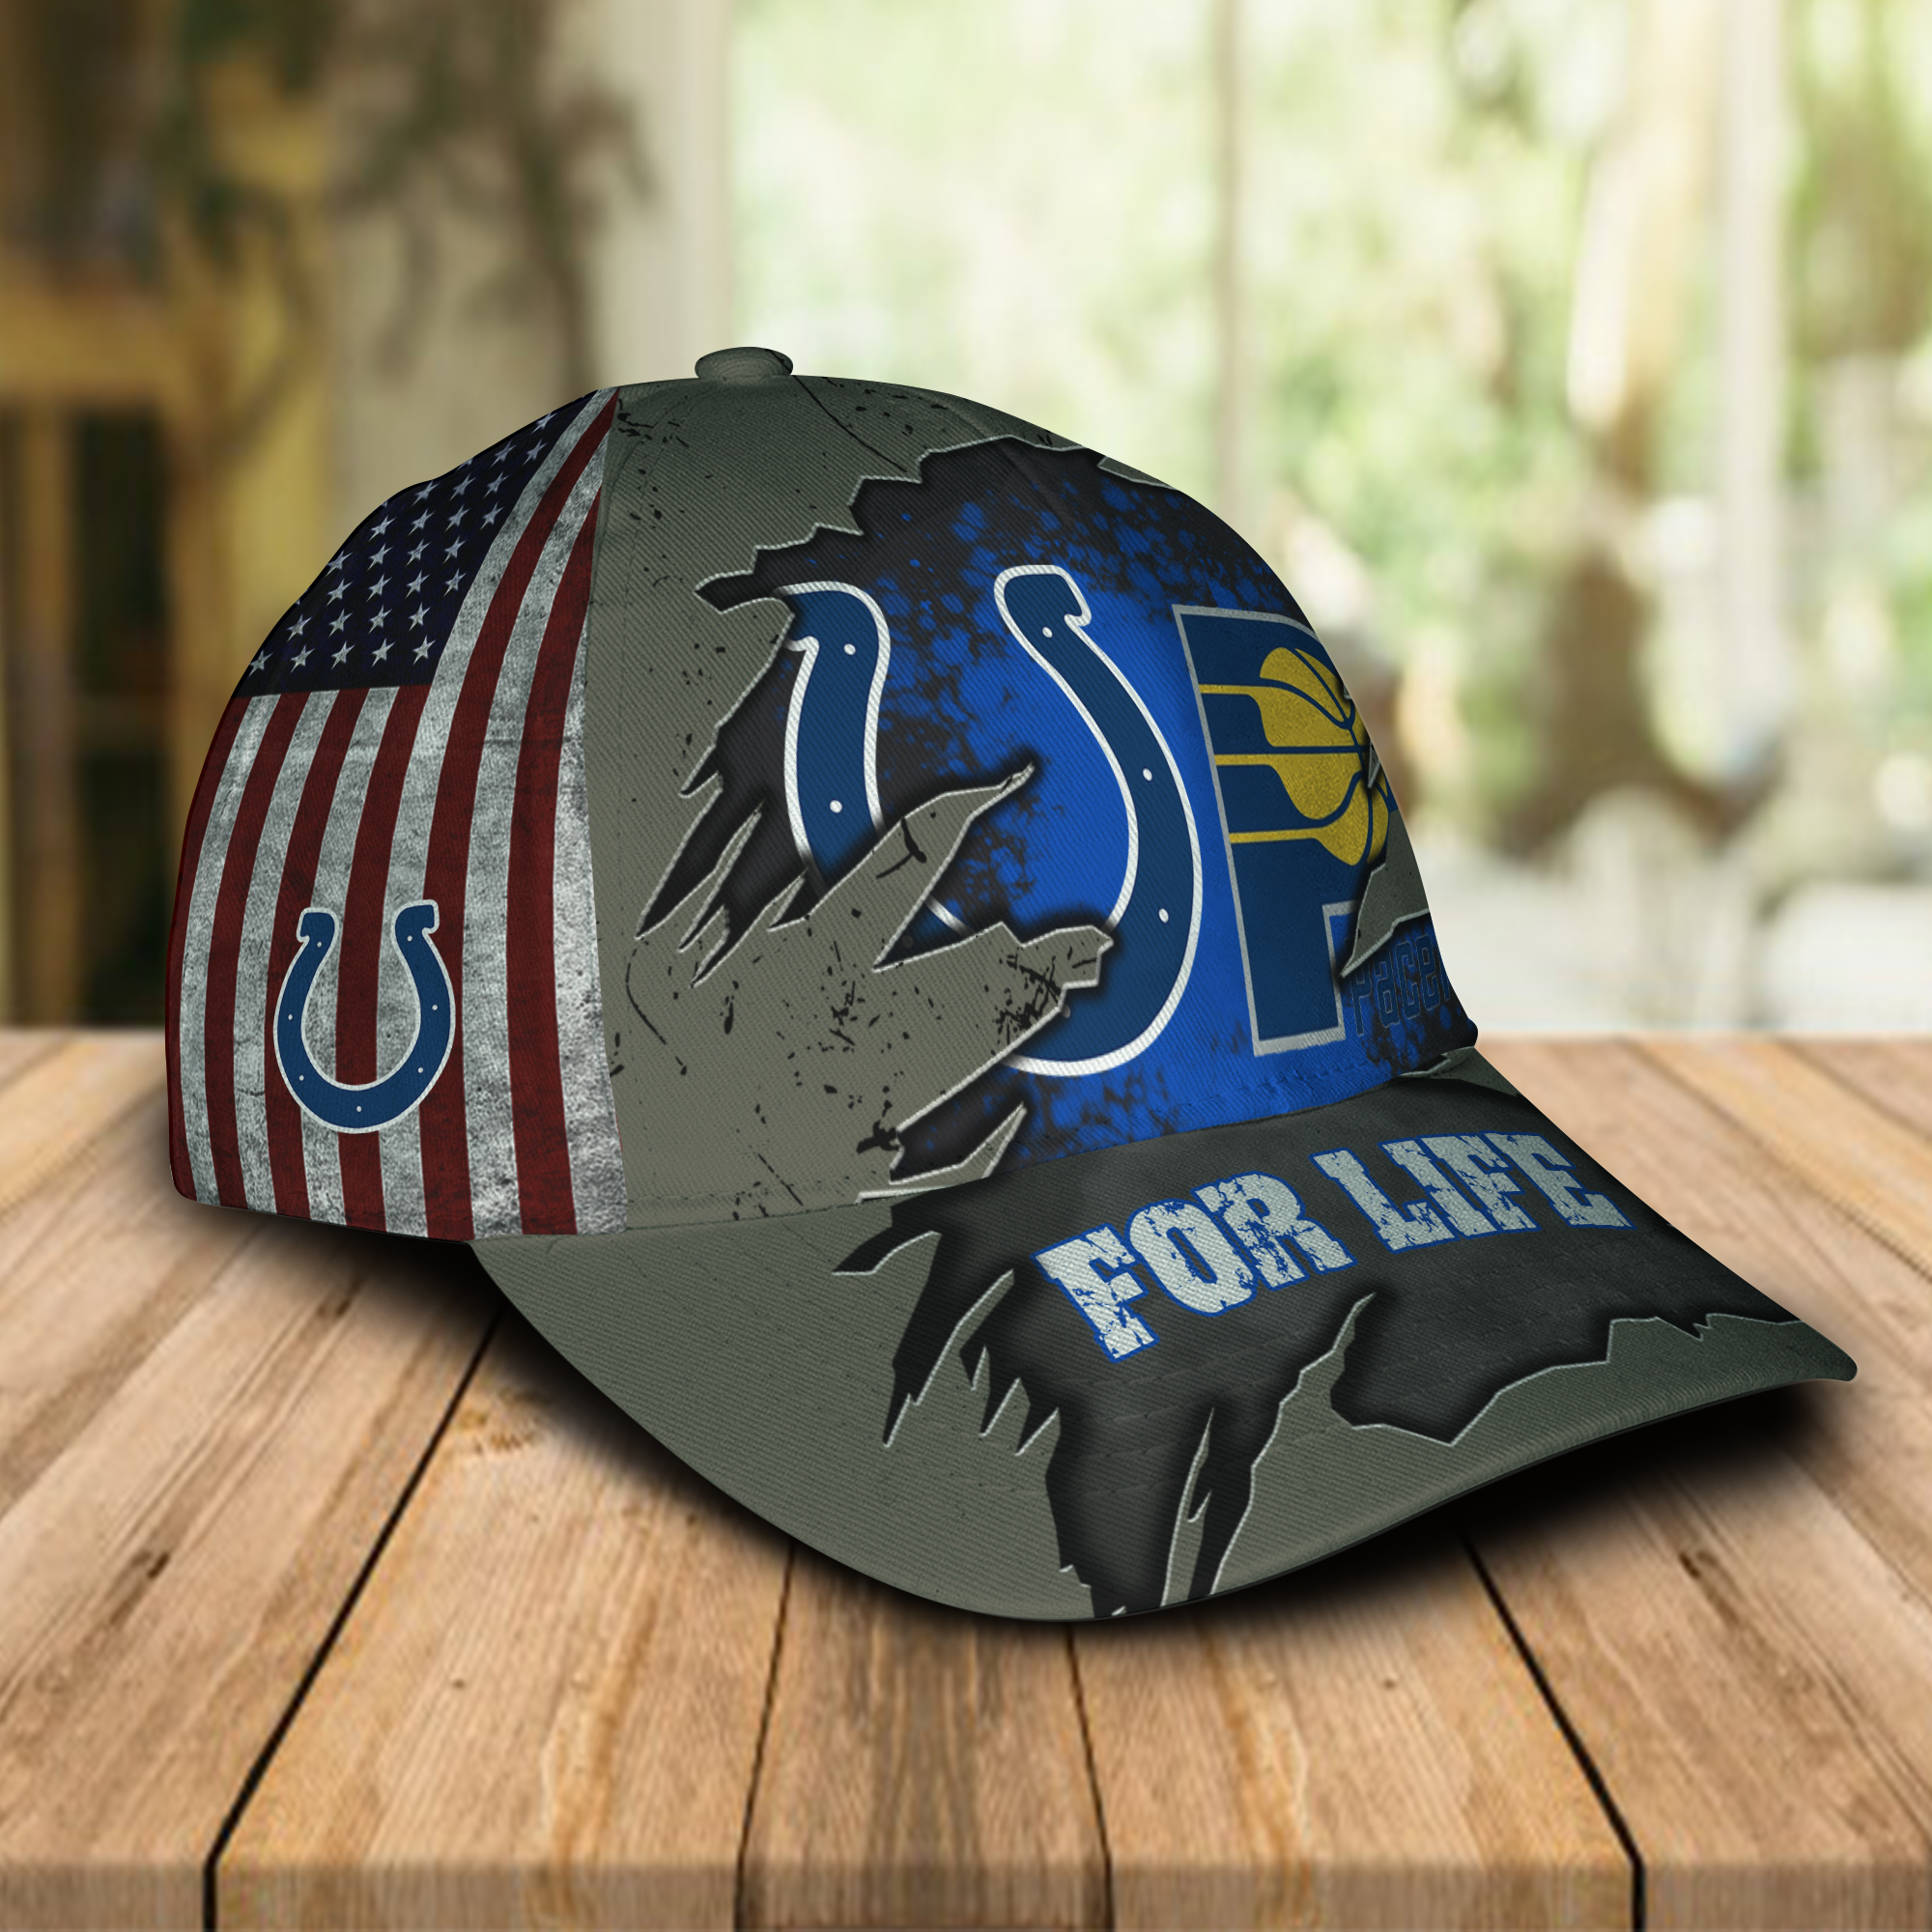 Indianapolis Colts, Indiana Pacers For Life Hat Cap -1